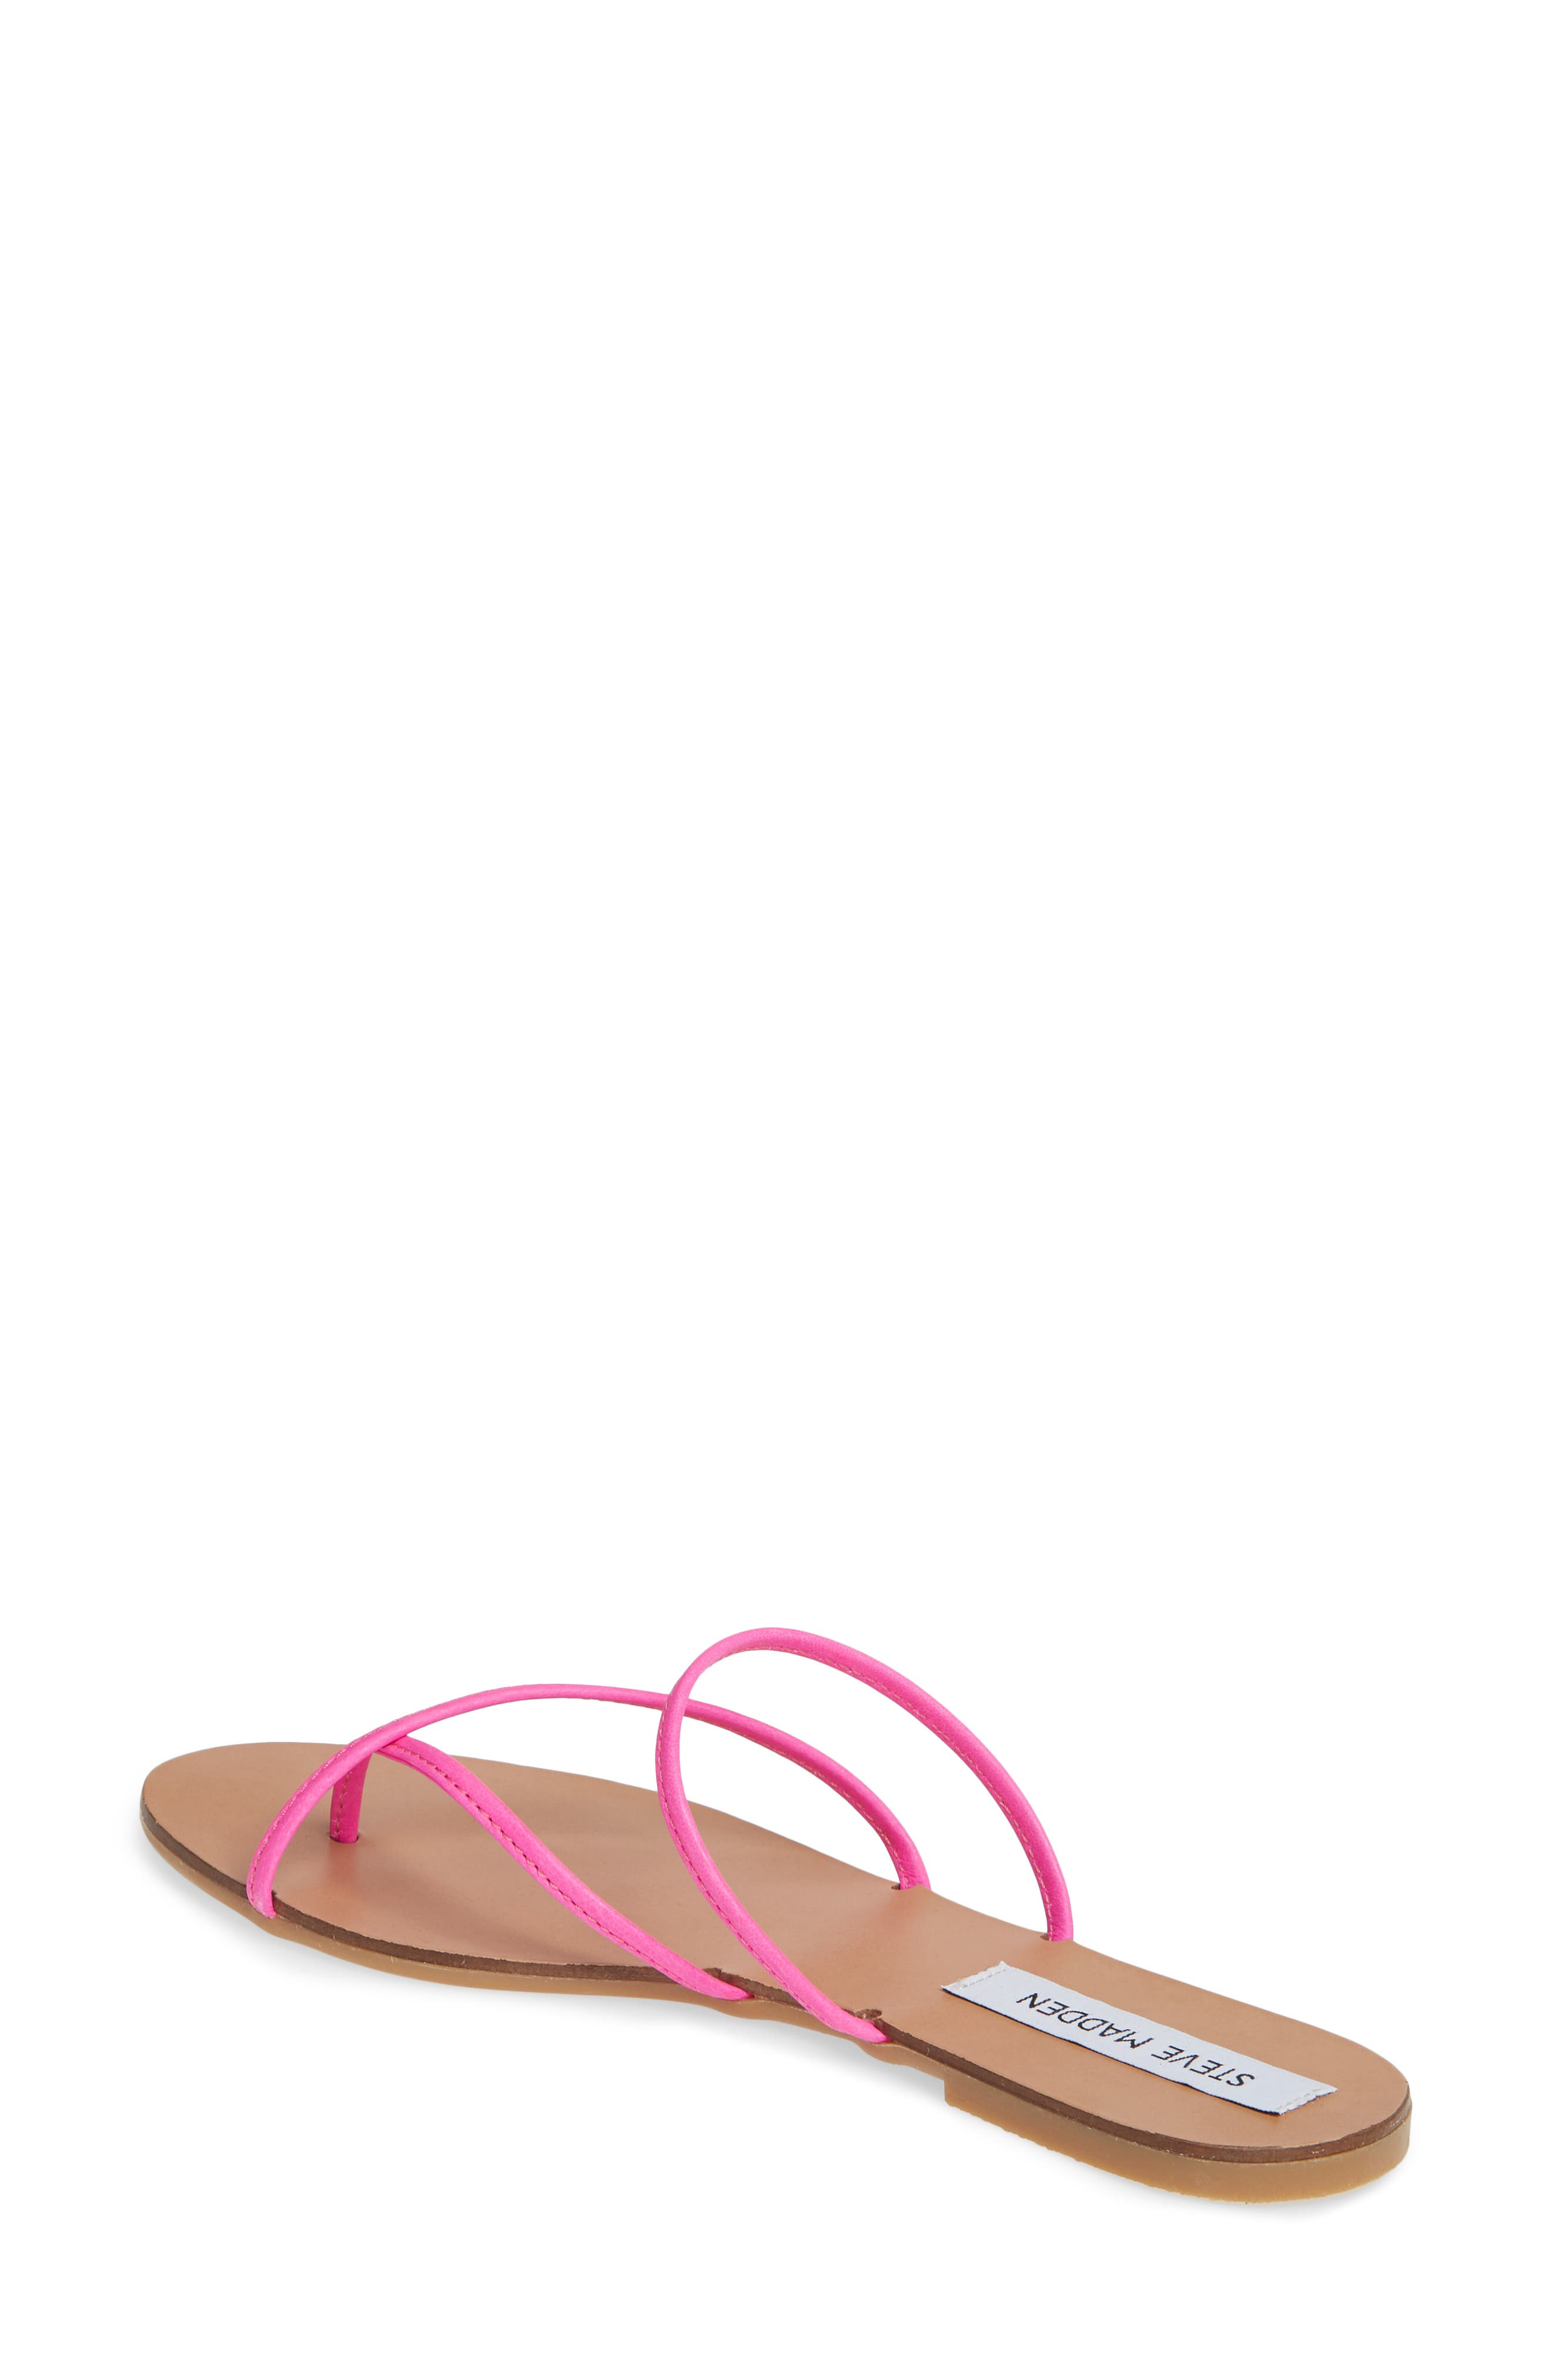 f3697341a Women s Sandals New Arrivals  Clothing